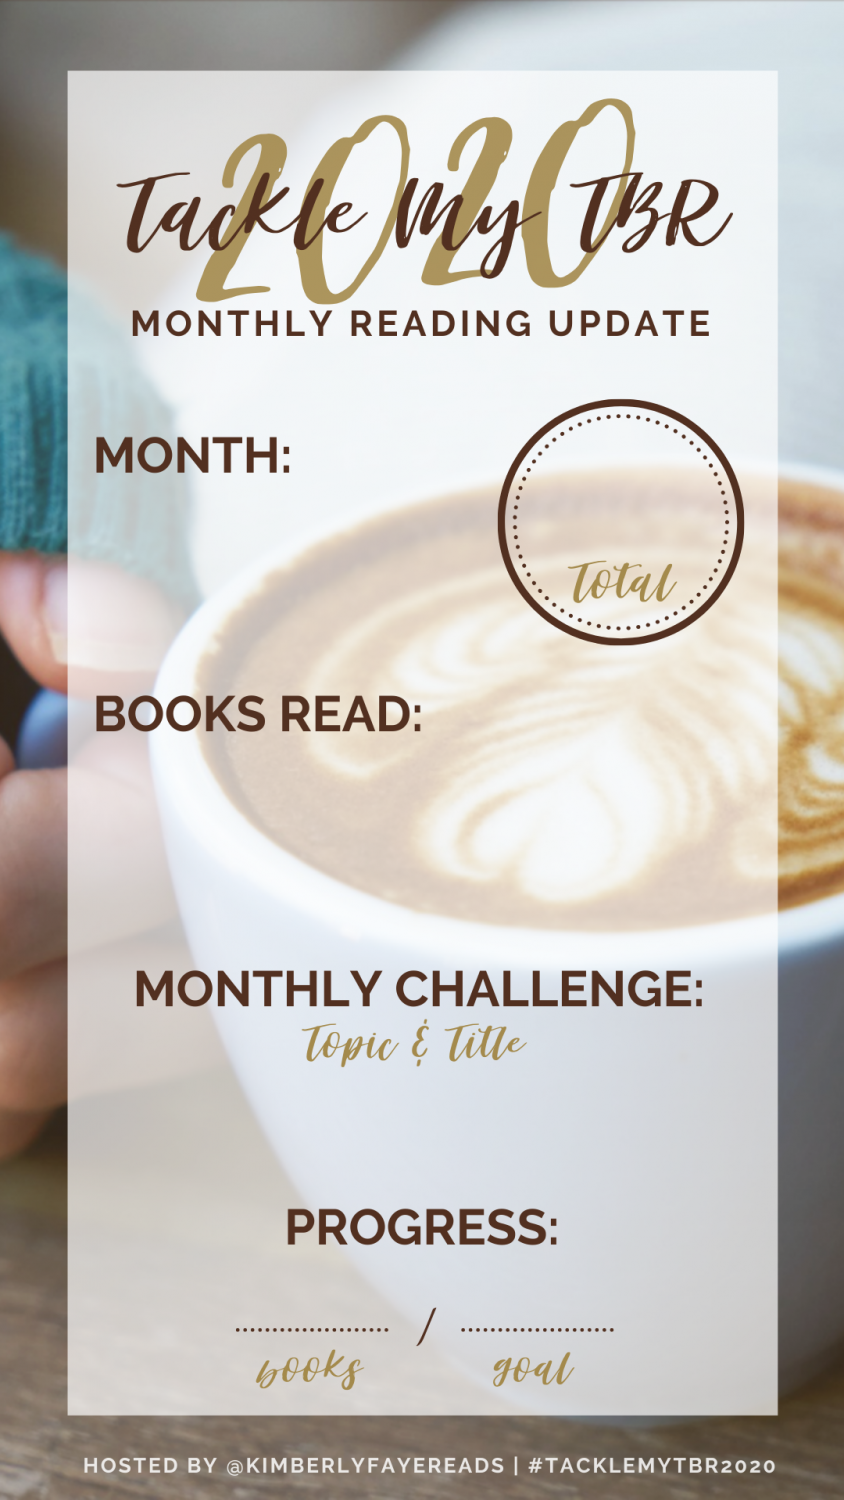 2020 Tackle My TBR Monthly Update